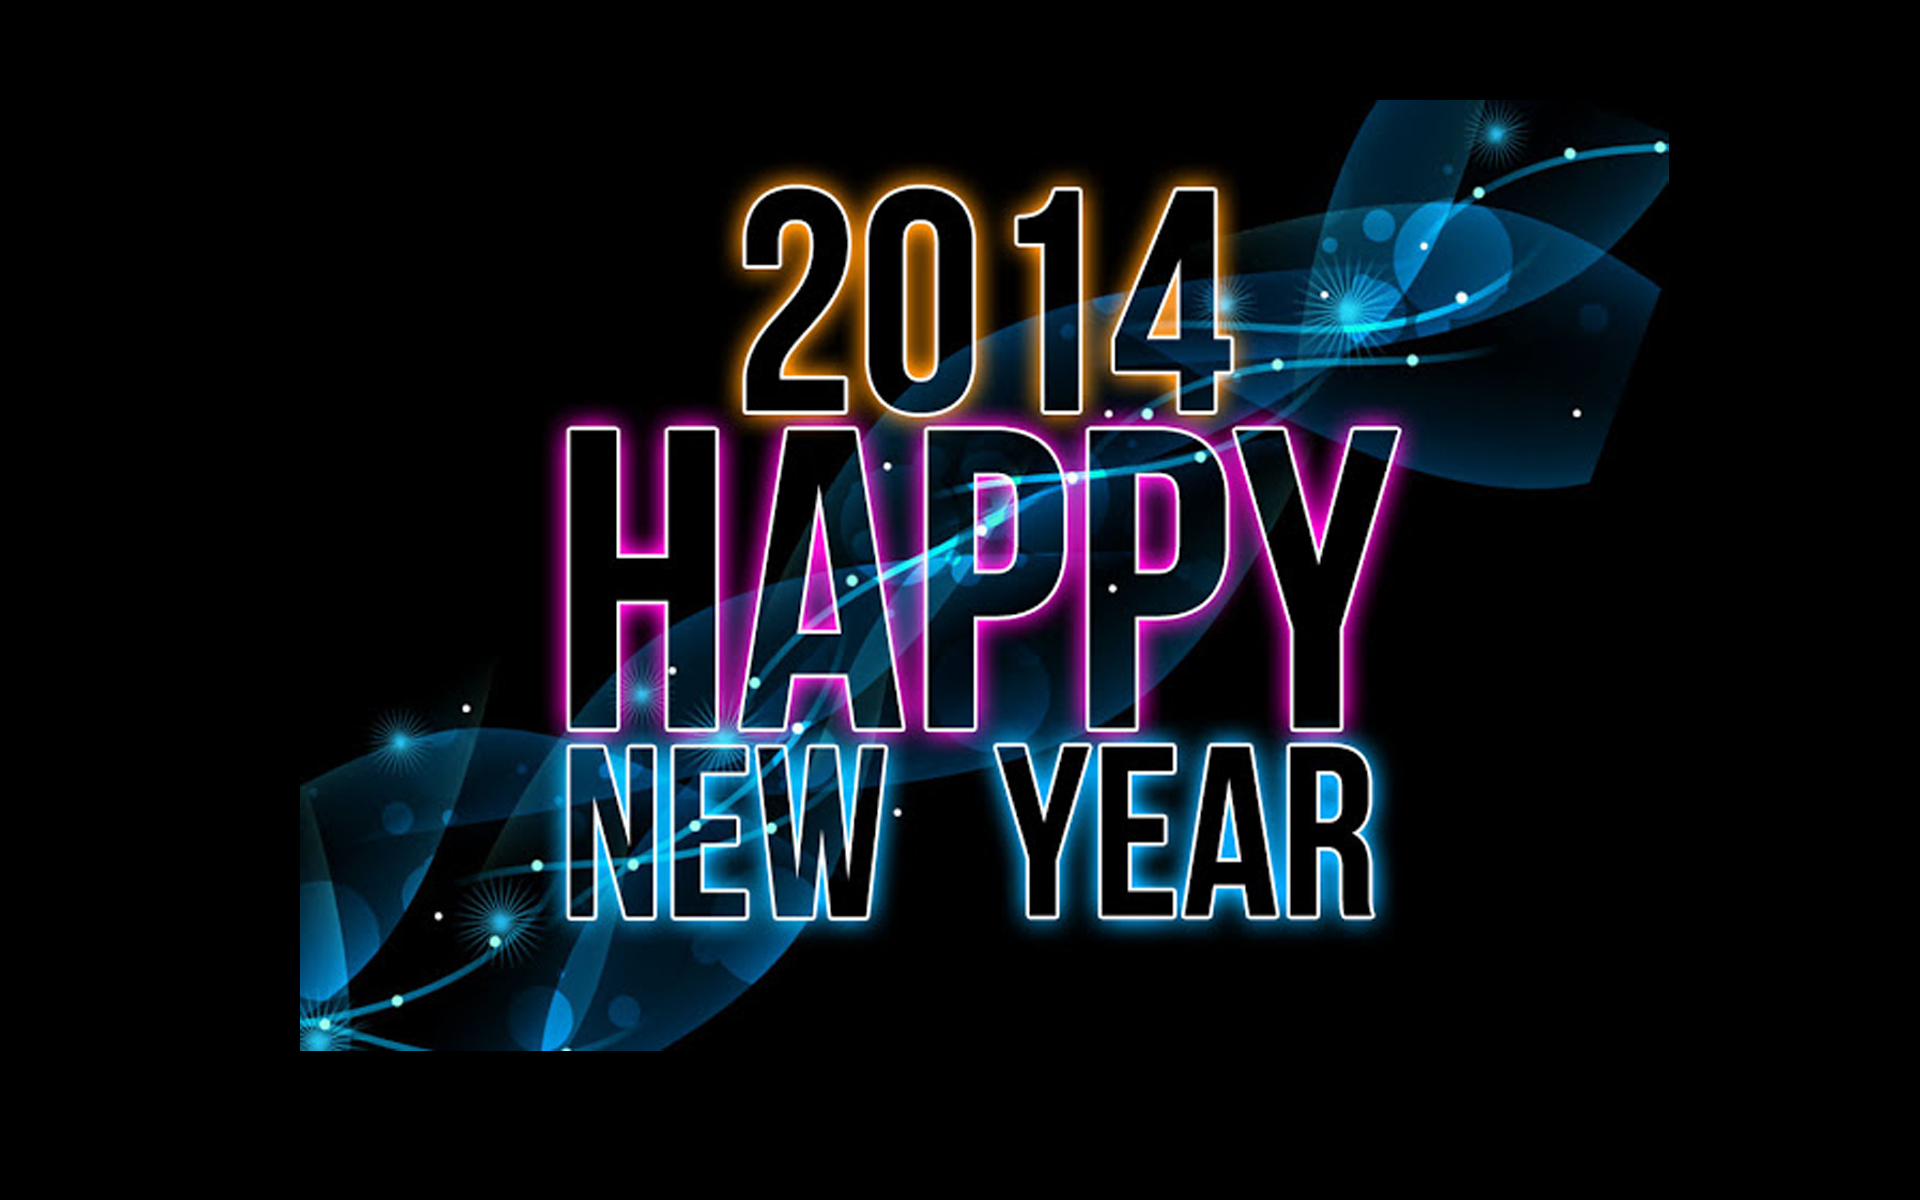 New year 2014 best wallpapers 2014 happy new year voltagebd Images